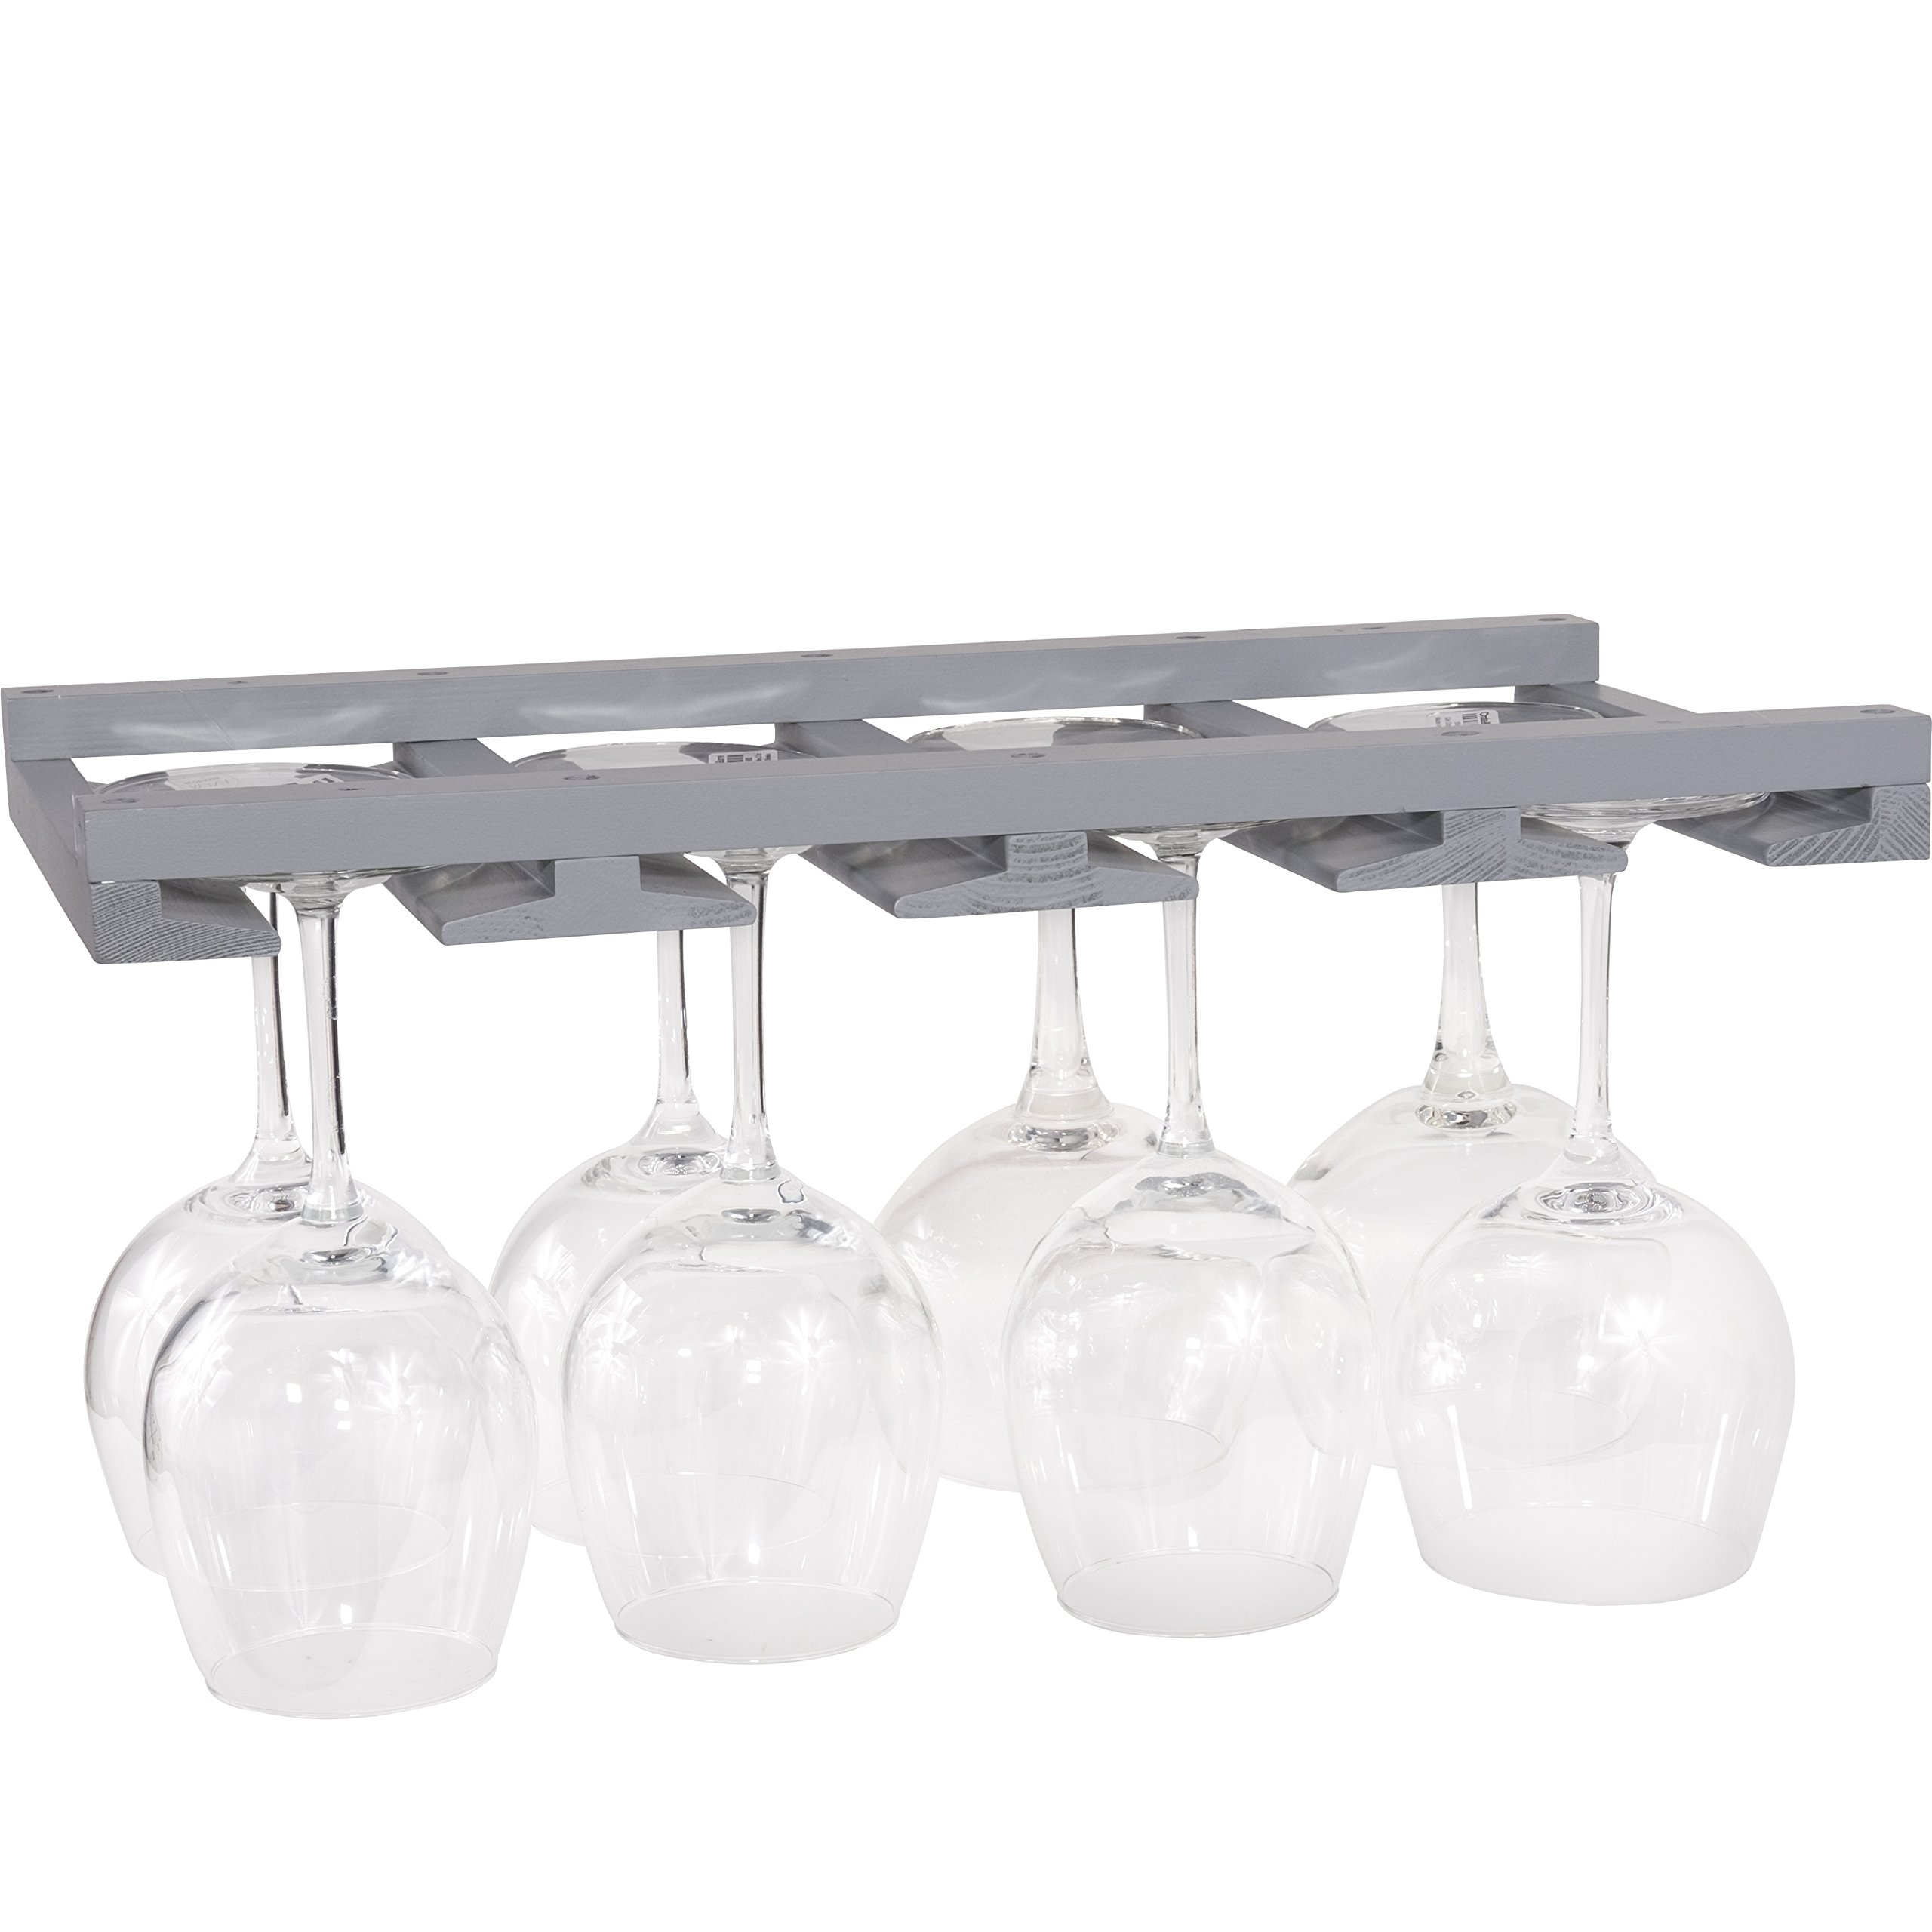 Rustic State Wine Glass Rack Makes Dull Kitchens or Bar Looks Great Perfectly Fits 6-12 Glasses Under Cabinet Easy to Install with Included Screws Great Hanging Bar Glass Rack (Gray)